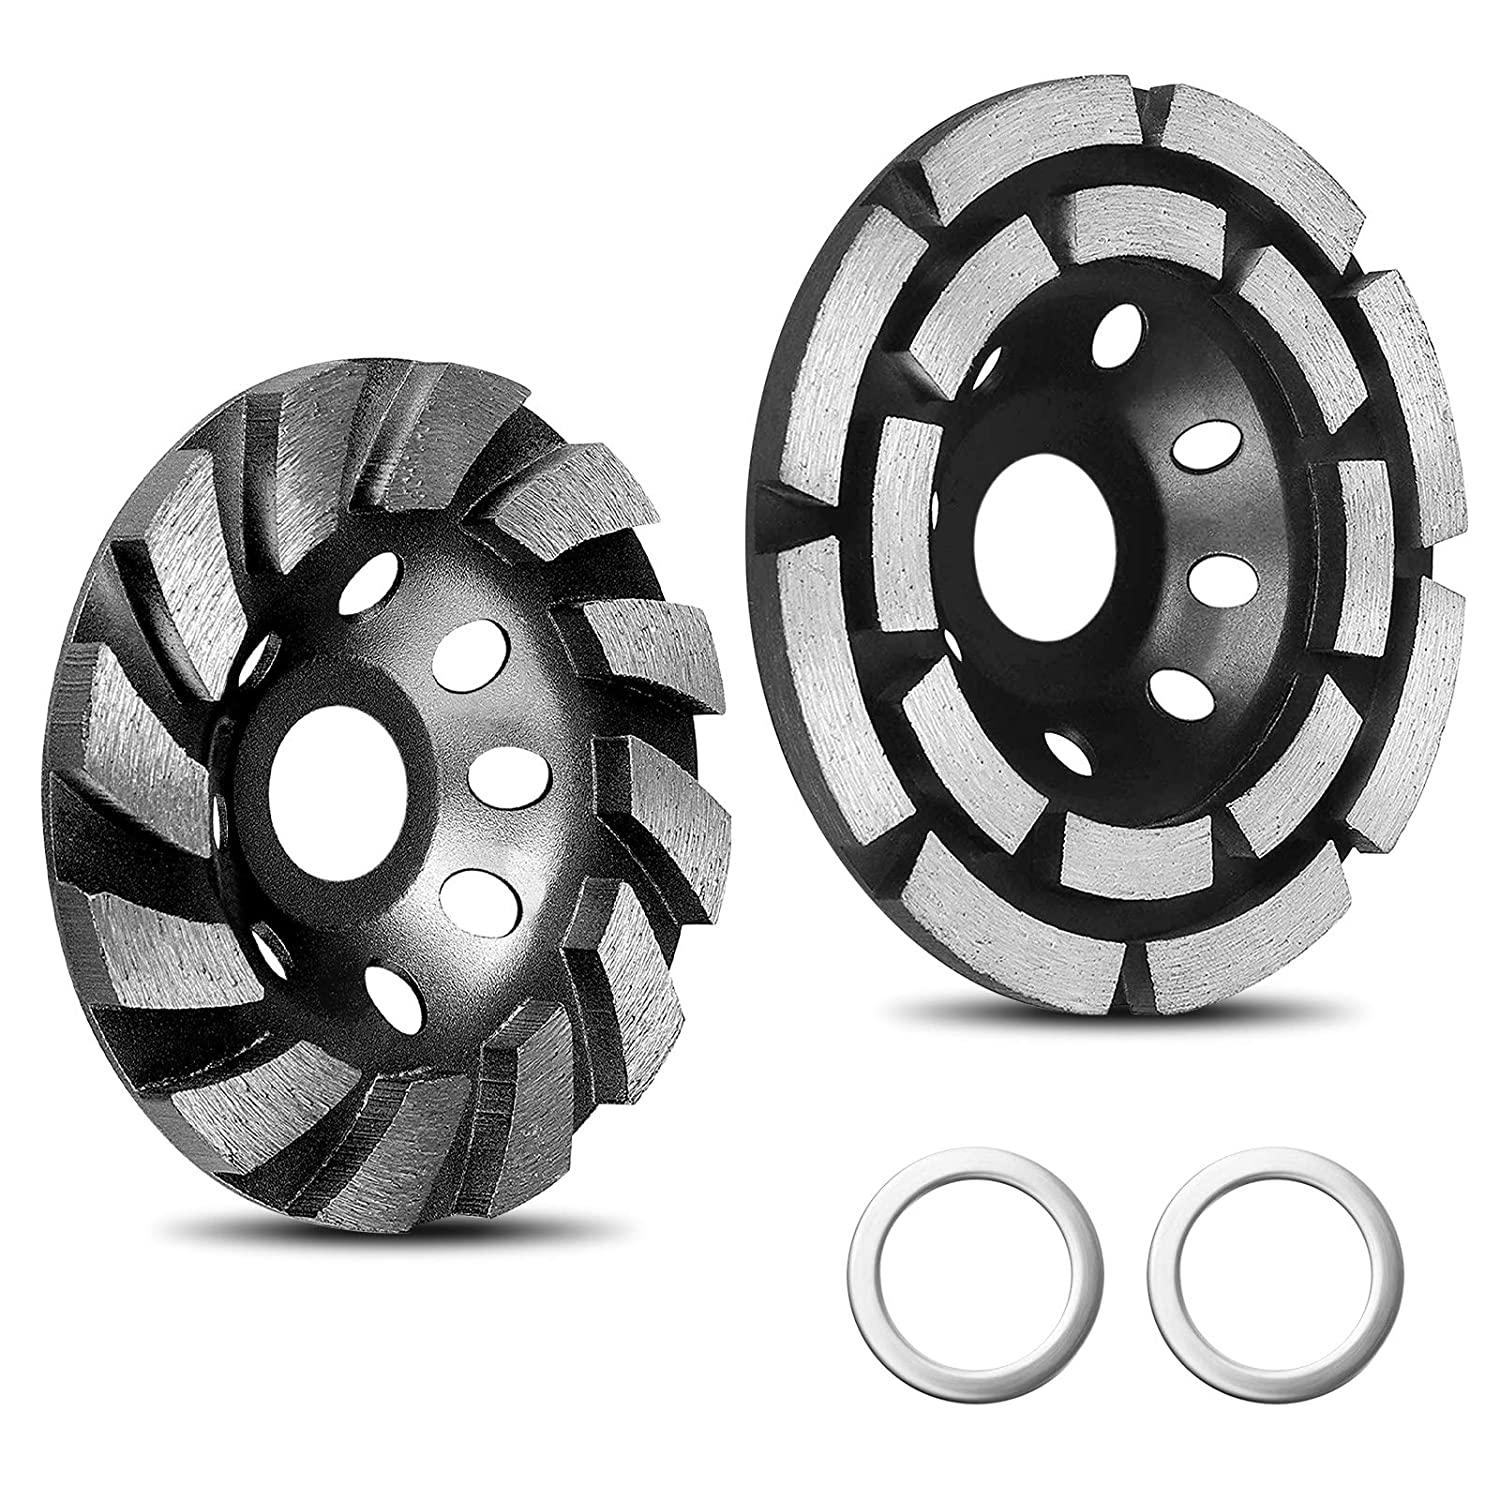 2021 Upgraded 2 Pack Recommended Max 50% OFF Diamond Cup Wheel Include Grinding 4-1